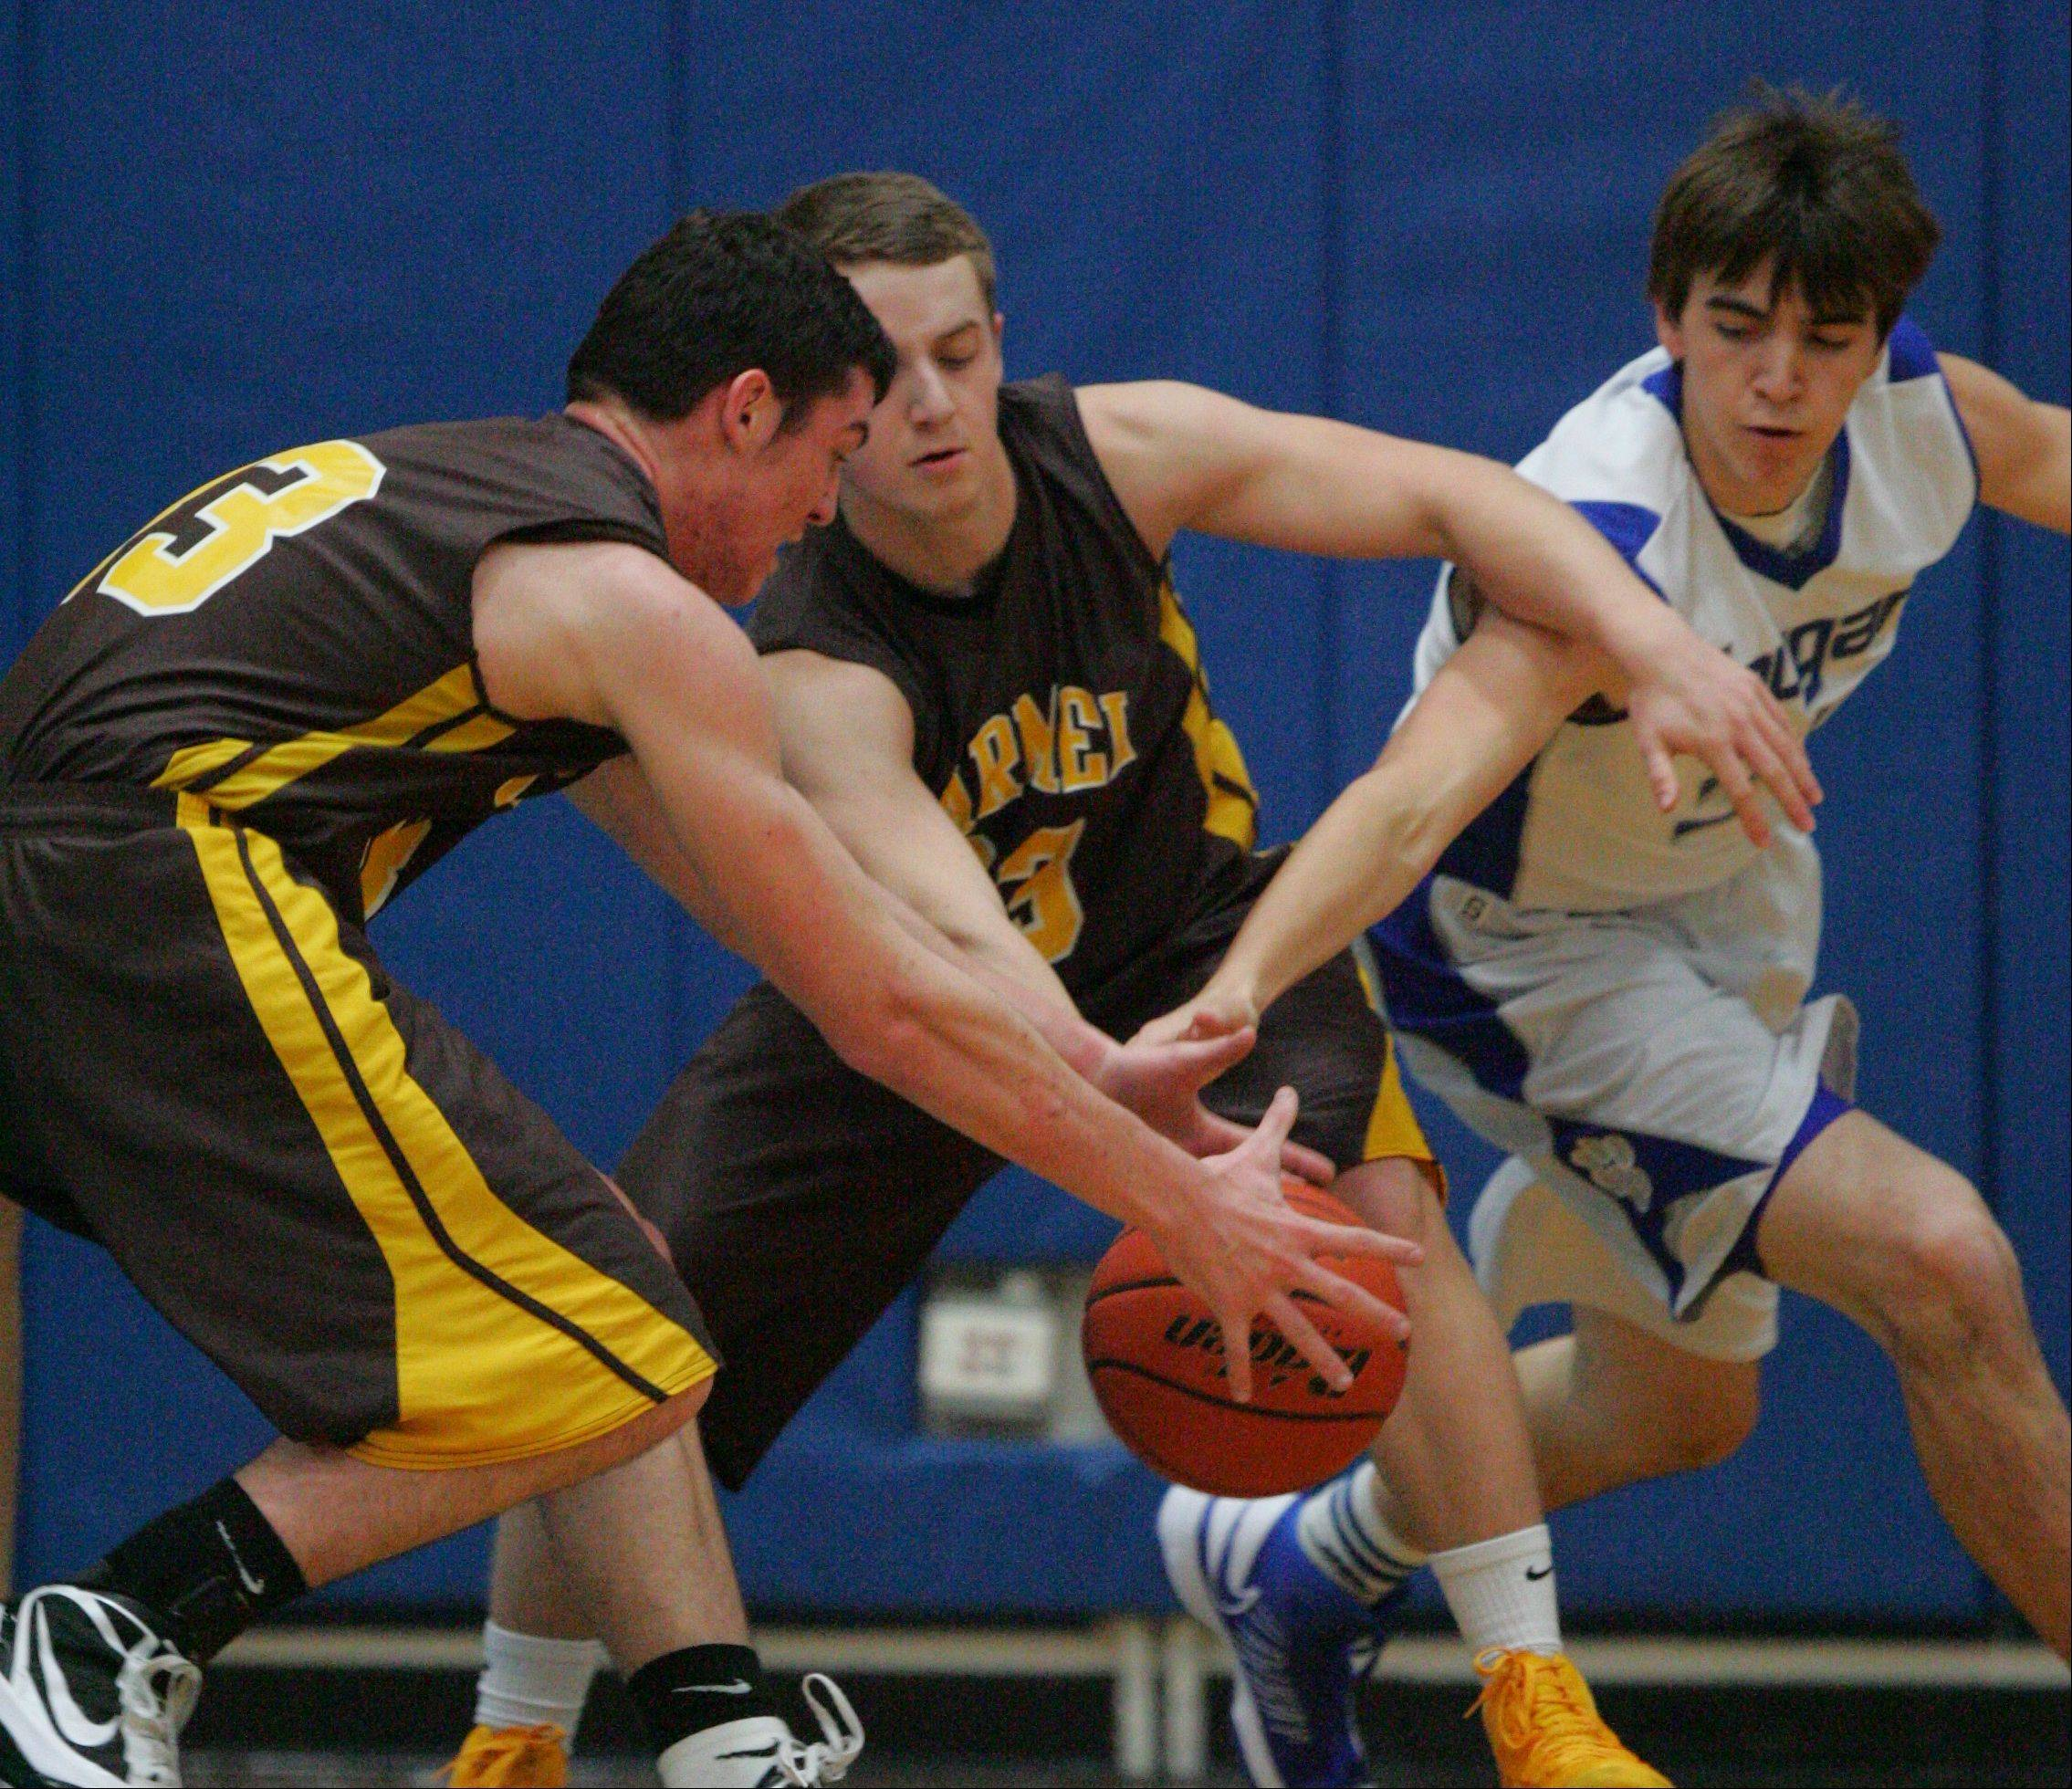 Images: Carmel vs. Vernon Hills boys basketball